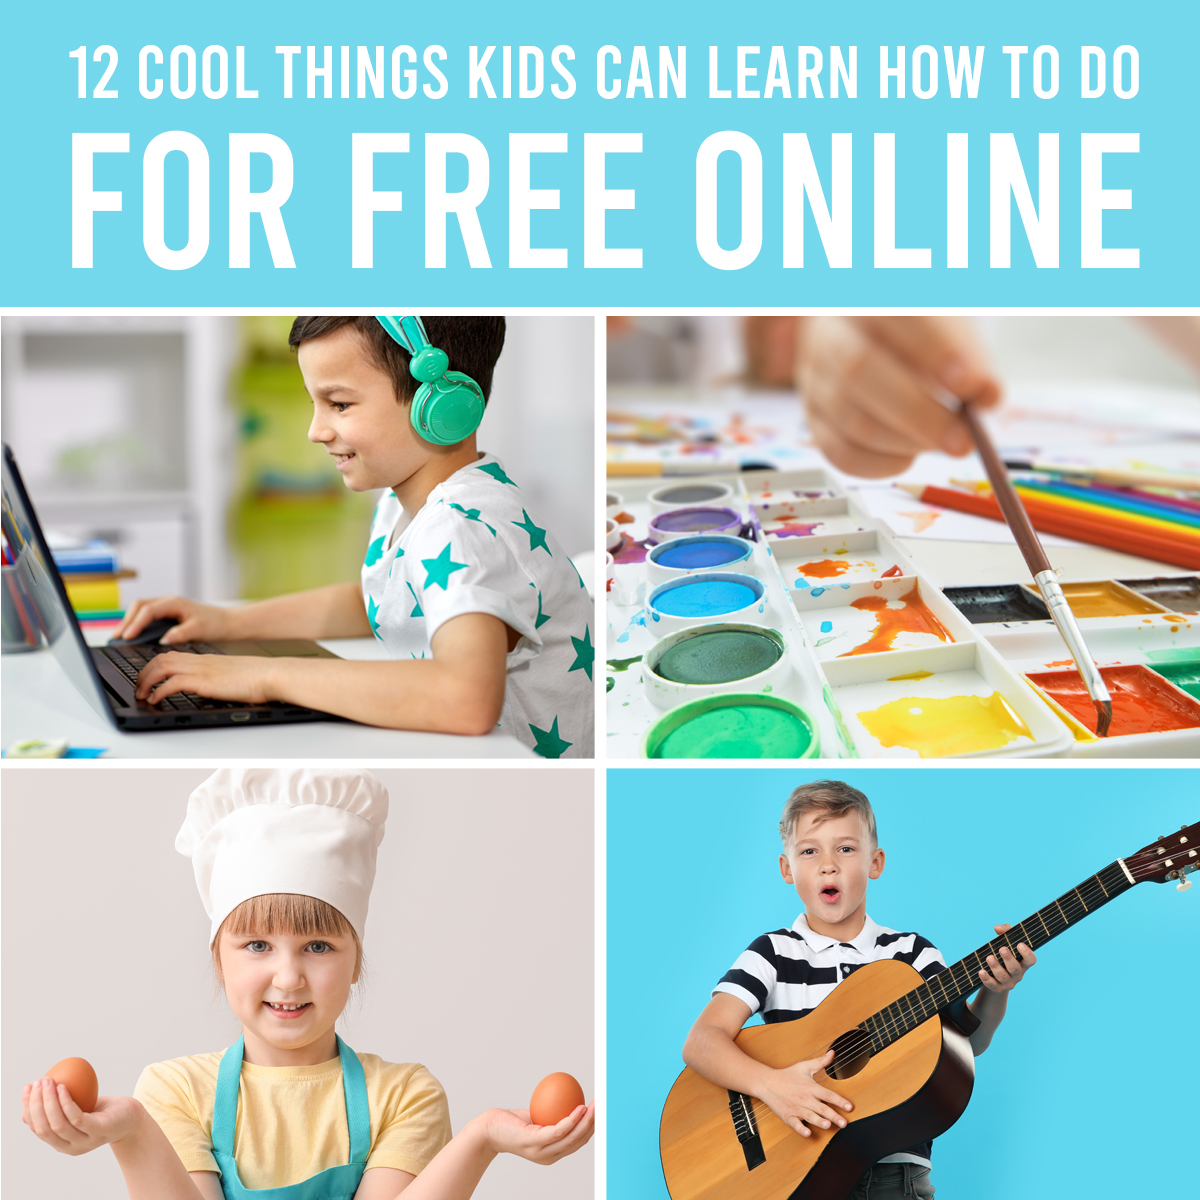 12 Cool Things kids can learn online for FREE {guitar, cooking, coding, and more!}